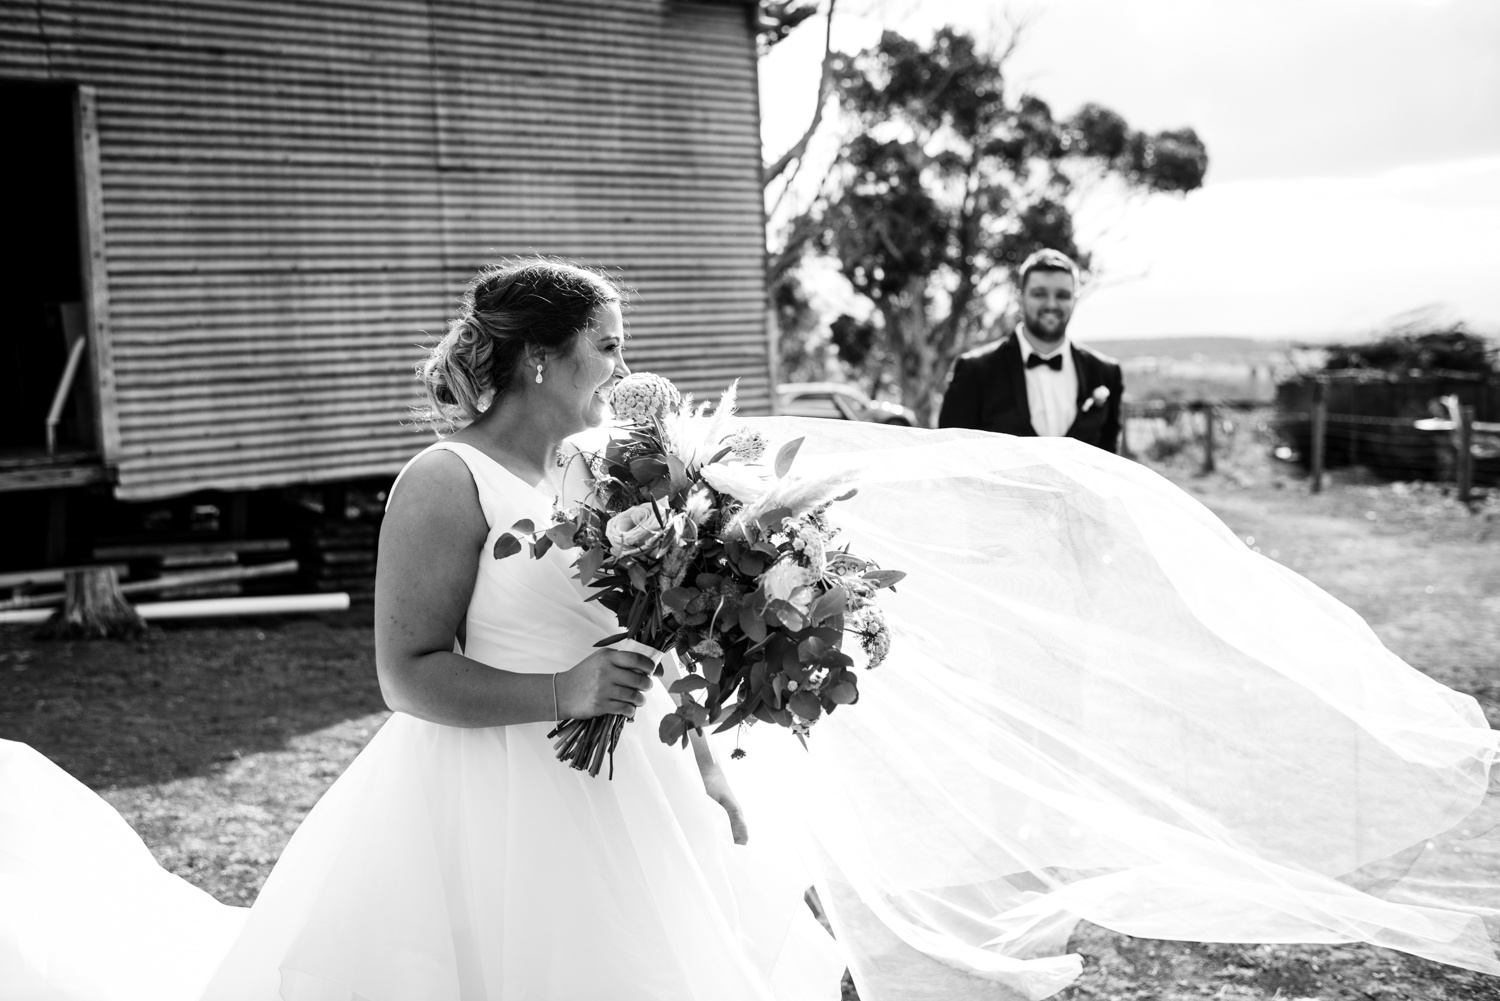 Brisbane Wedding Photographer | Engagement-Elopement Photography-50.jpg